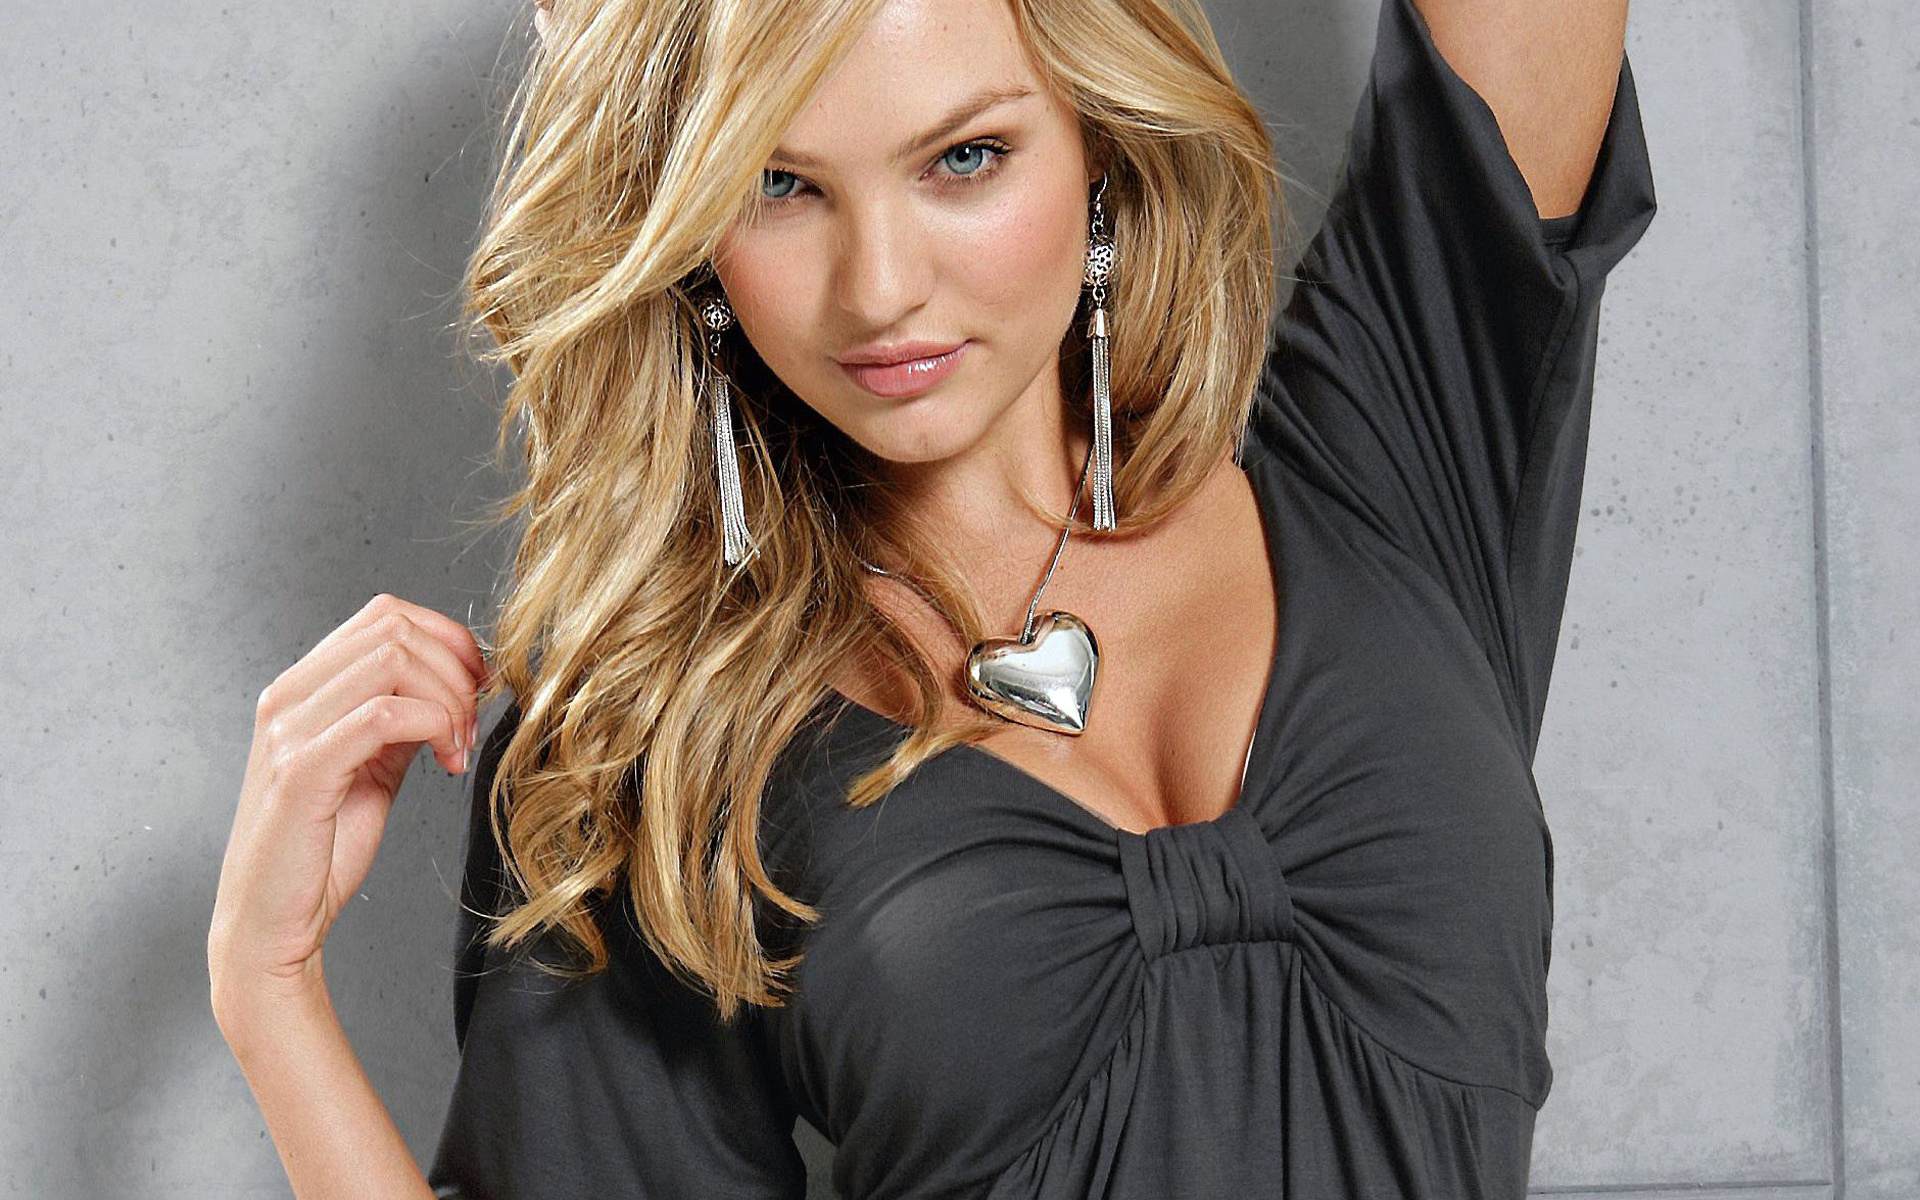 Girl Of The Week: Candice Swanepoel | Livin Cool Wallpaper